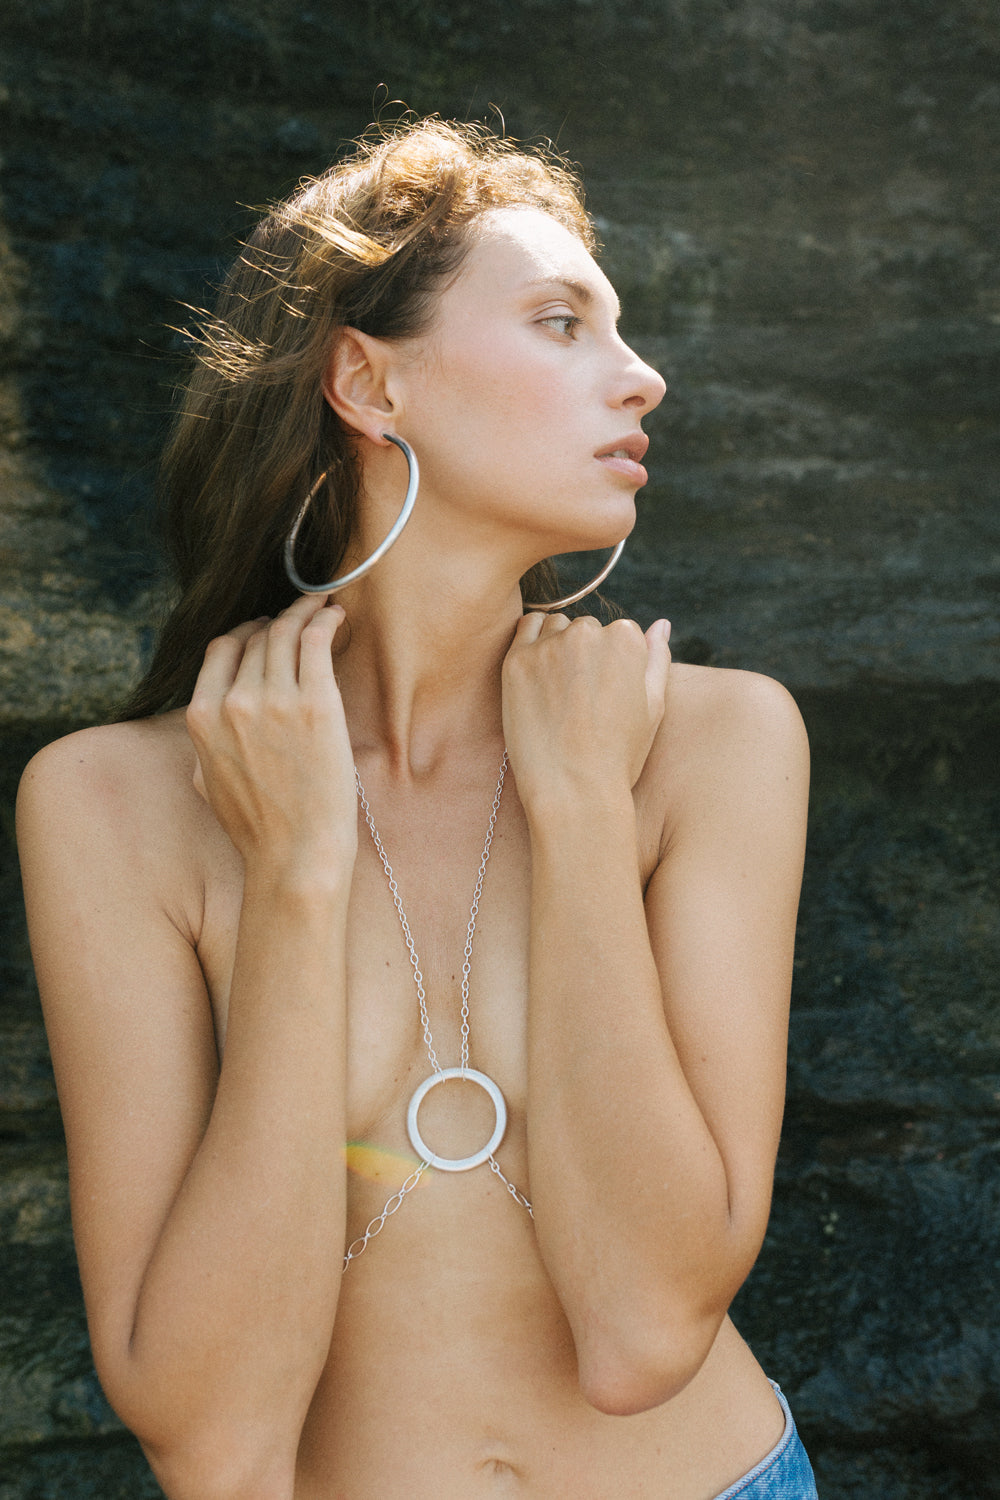 Model and Artist Ksenia Senko with VIKA jewels recycled sterling silver jewelry jewellery sustainable ethical handmade in Bali photographer Arina Emelyanova